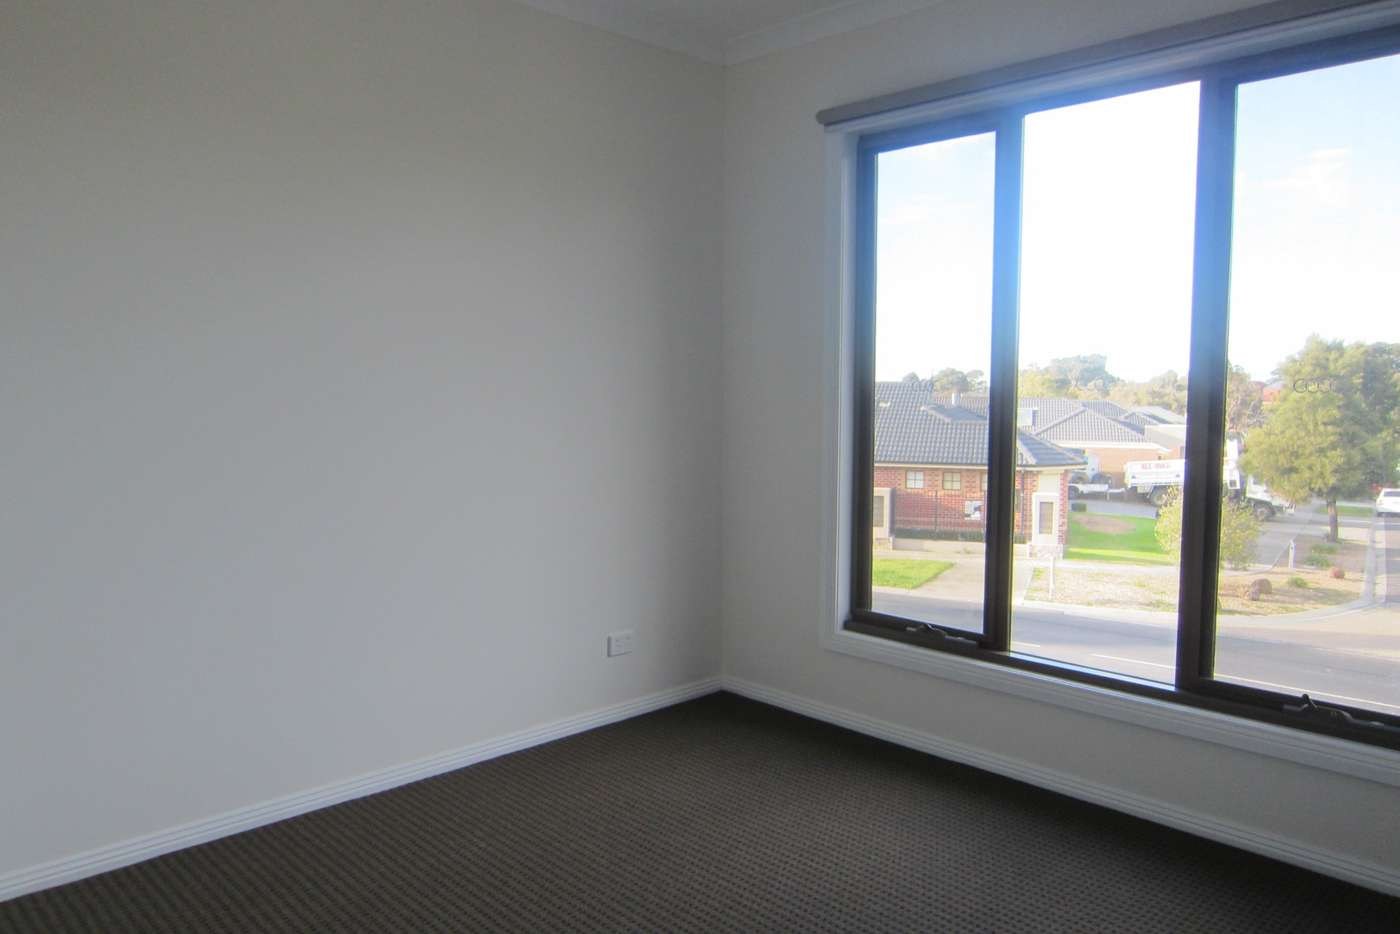 Seventh view of Homely townhouse listing, 1/50 Malcolm Creek Parade, Craigieburn VIC 3064